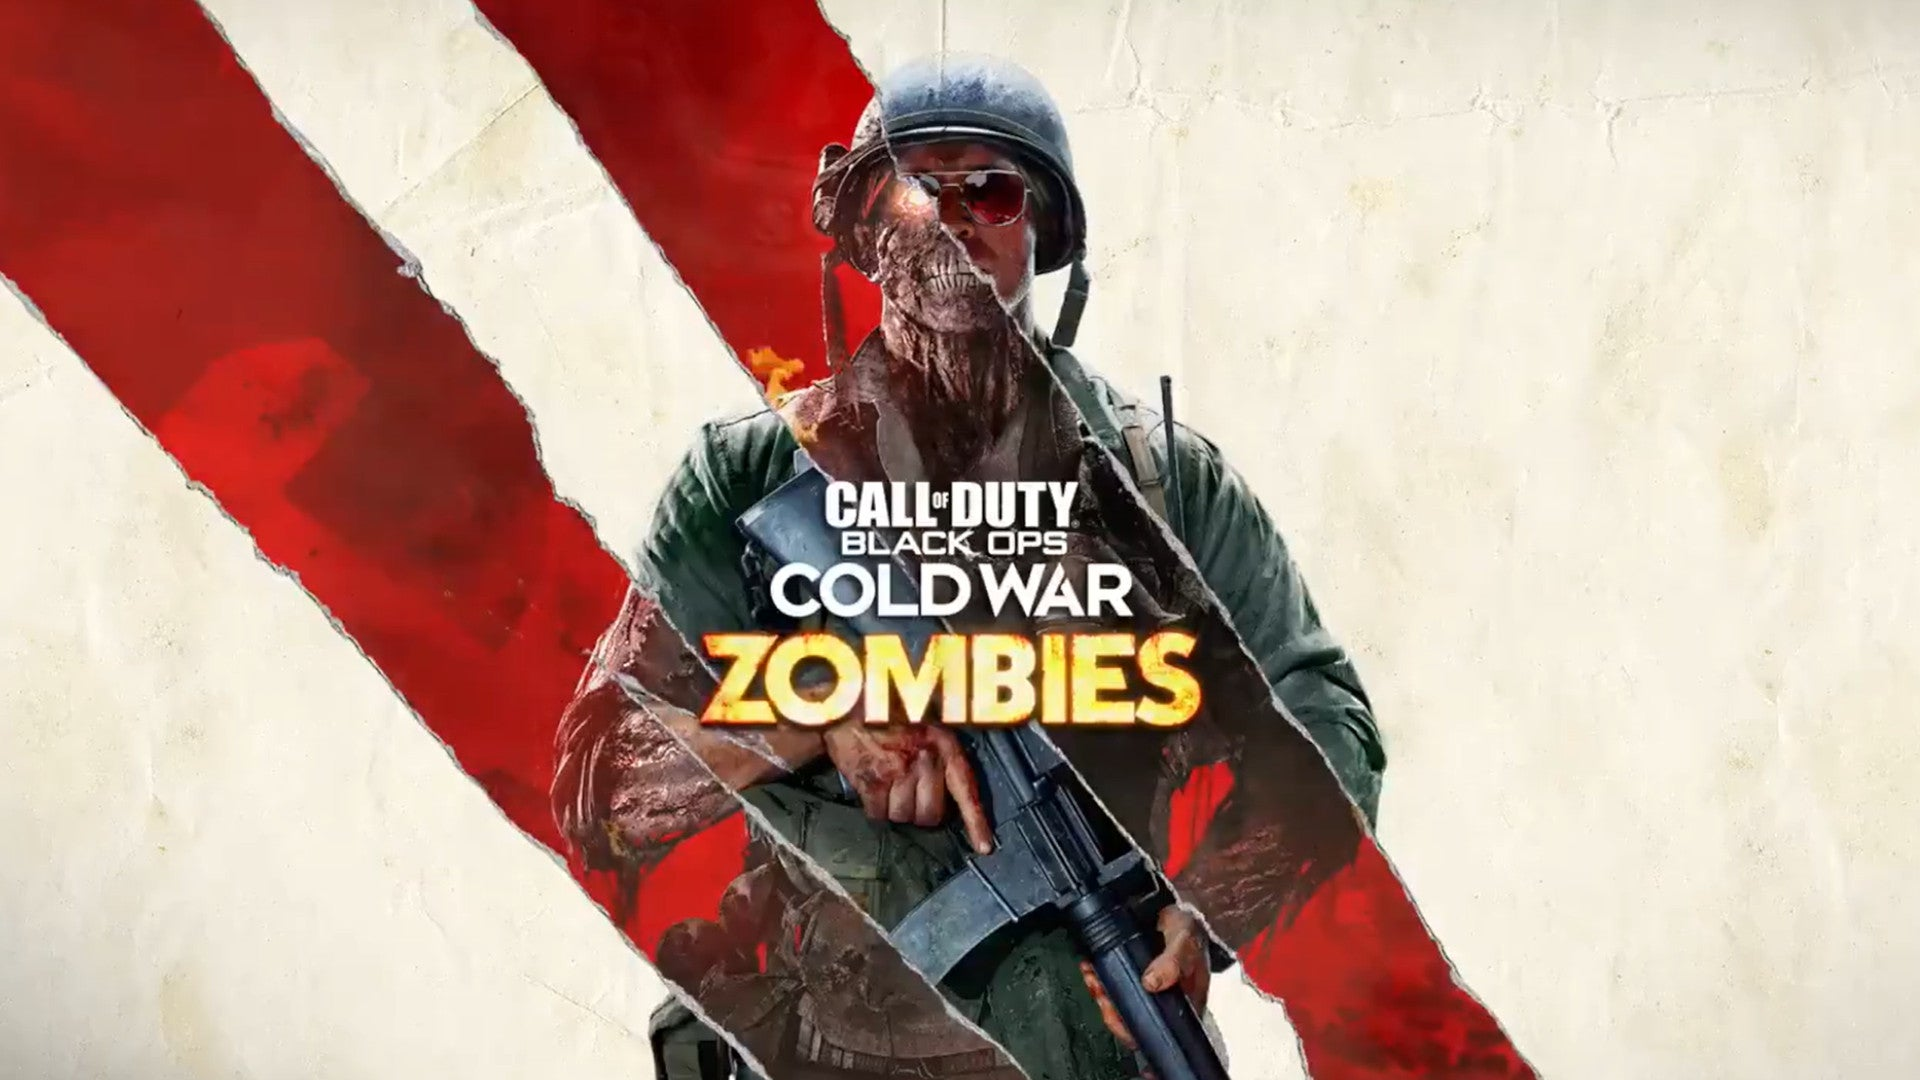 Call Of Duty Black Ops Cold War Zombies Reveal Is Coming This Week Trusted Reviews